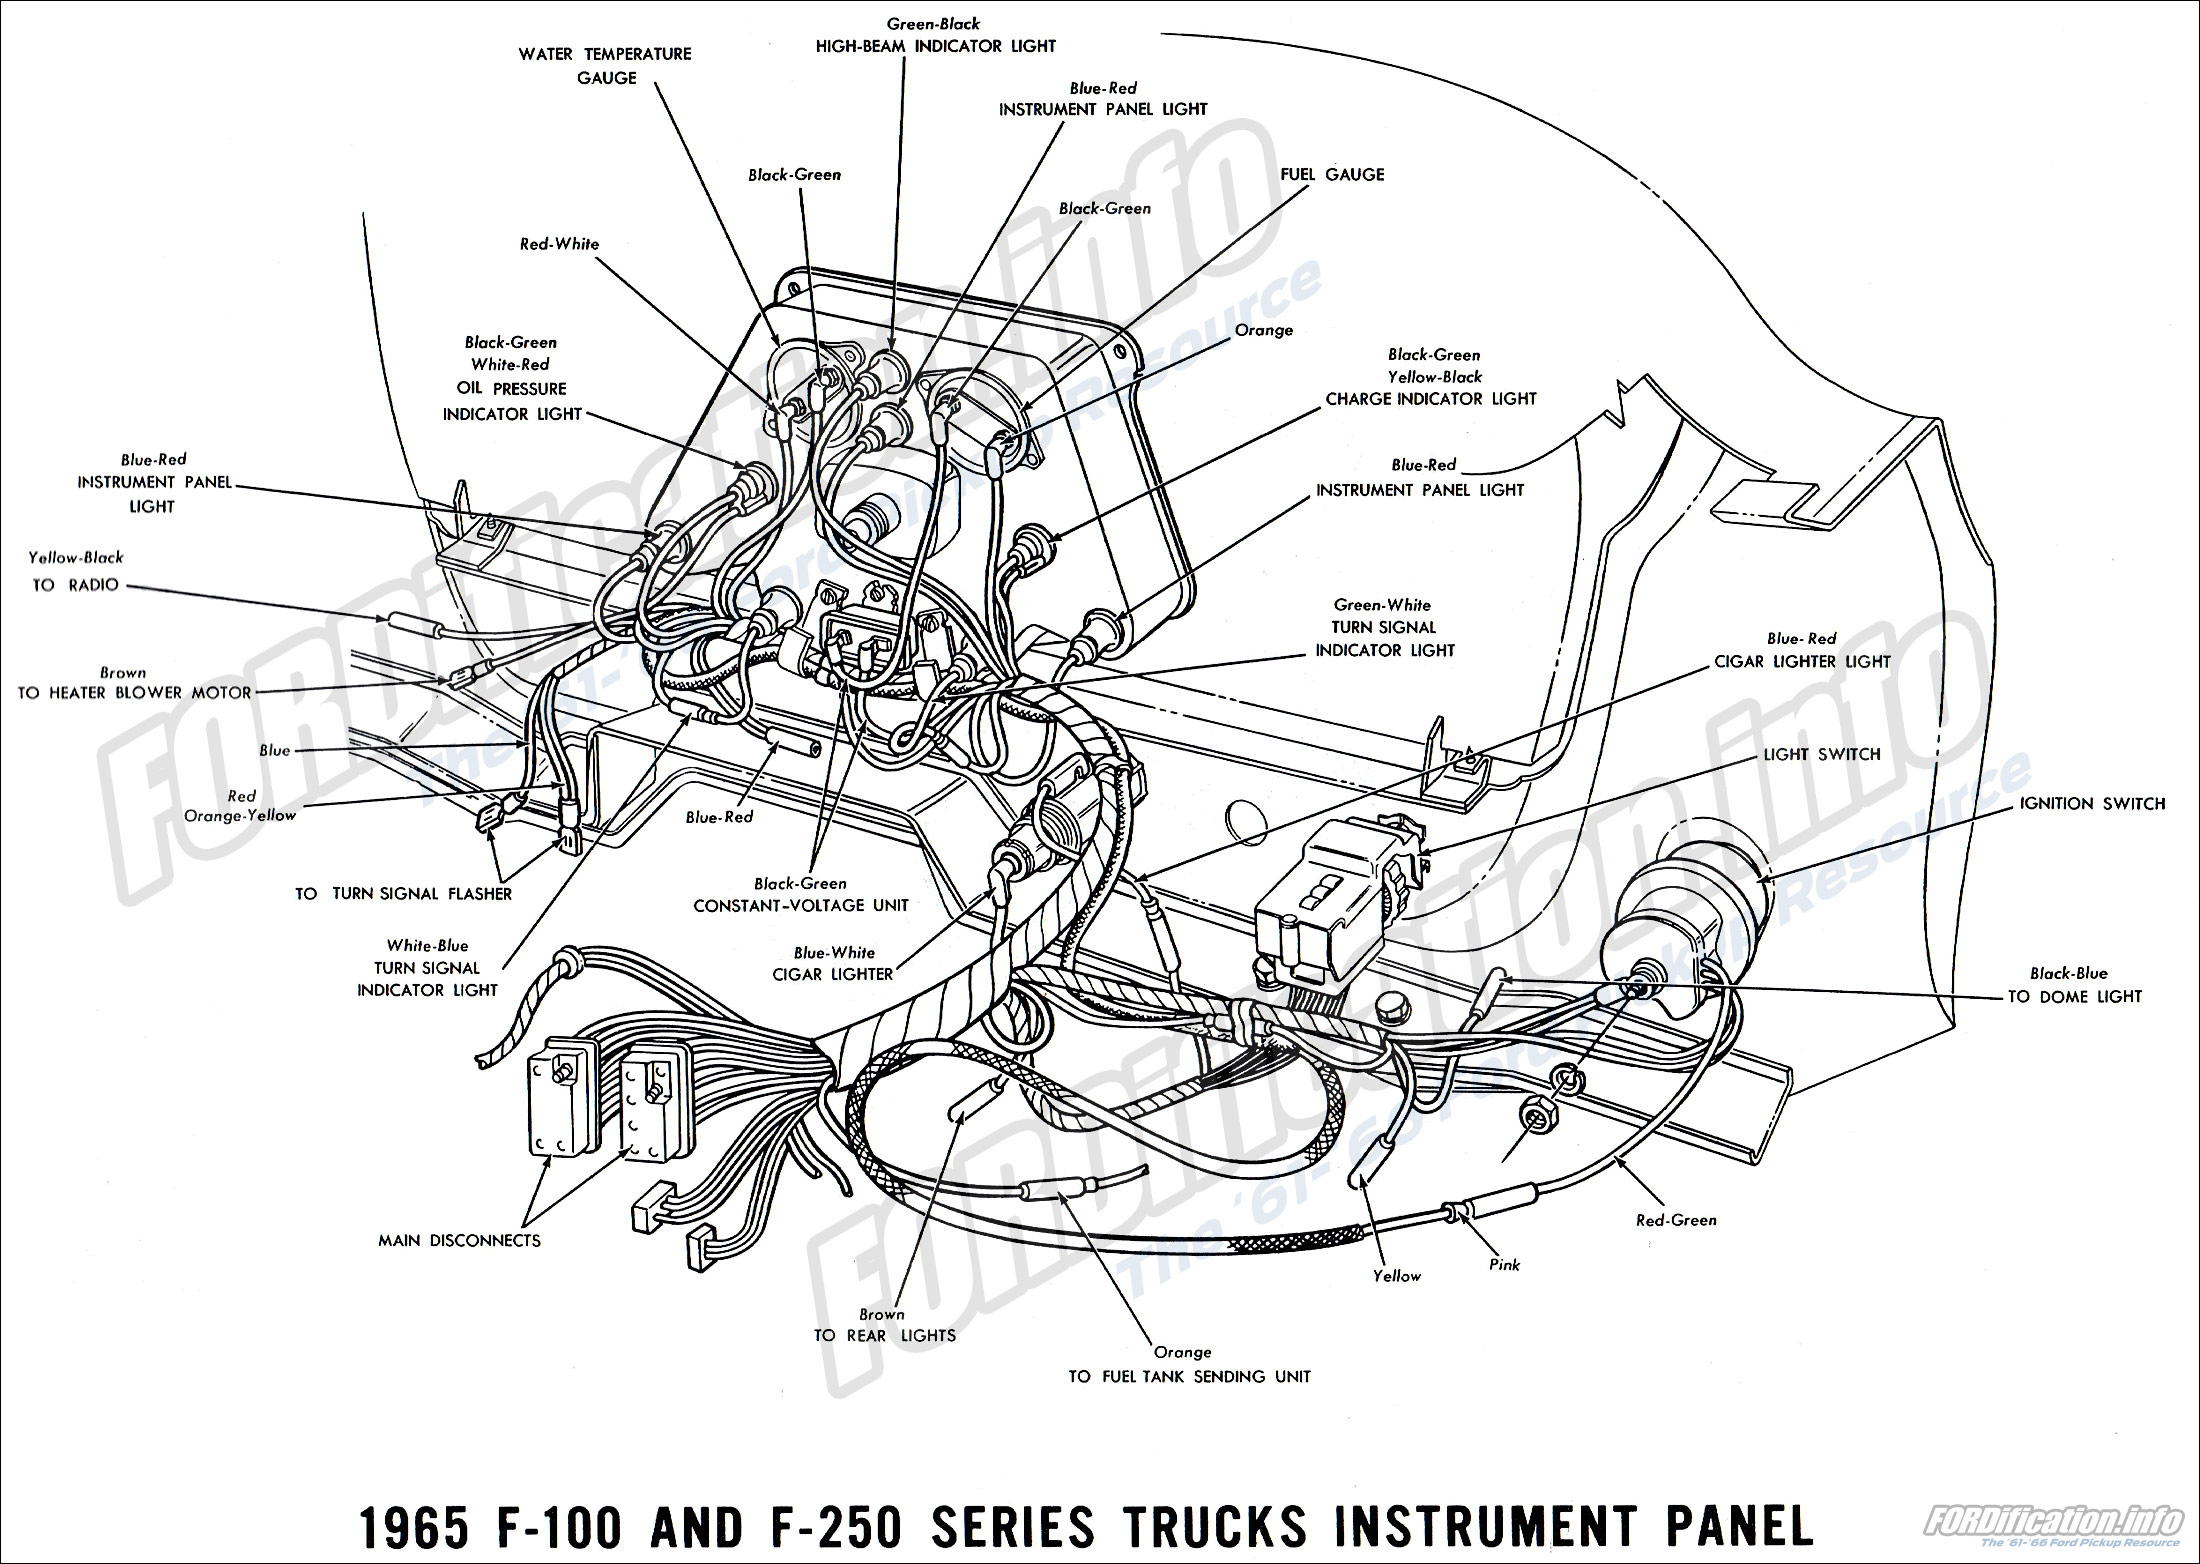 DIAGRAM] 1965 Mustang Wiring Diagram Instrument Panel Light FULL Version HD  Quality Panel Light - MAKEADIAGRAM.CONSULENTIPUBBLICI.ITmakeadiagram.consulentipubblici.it